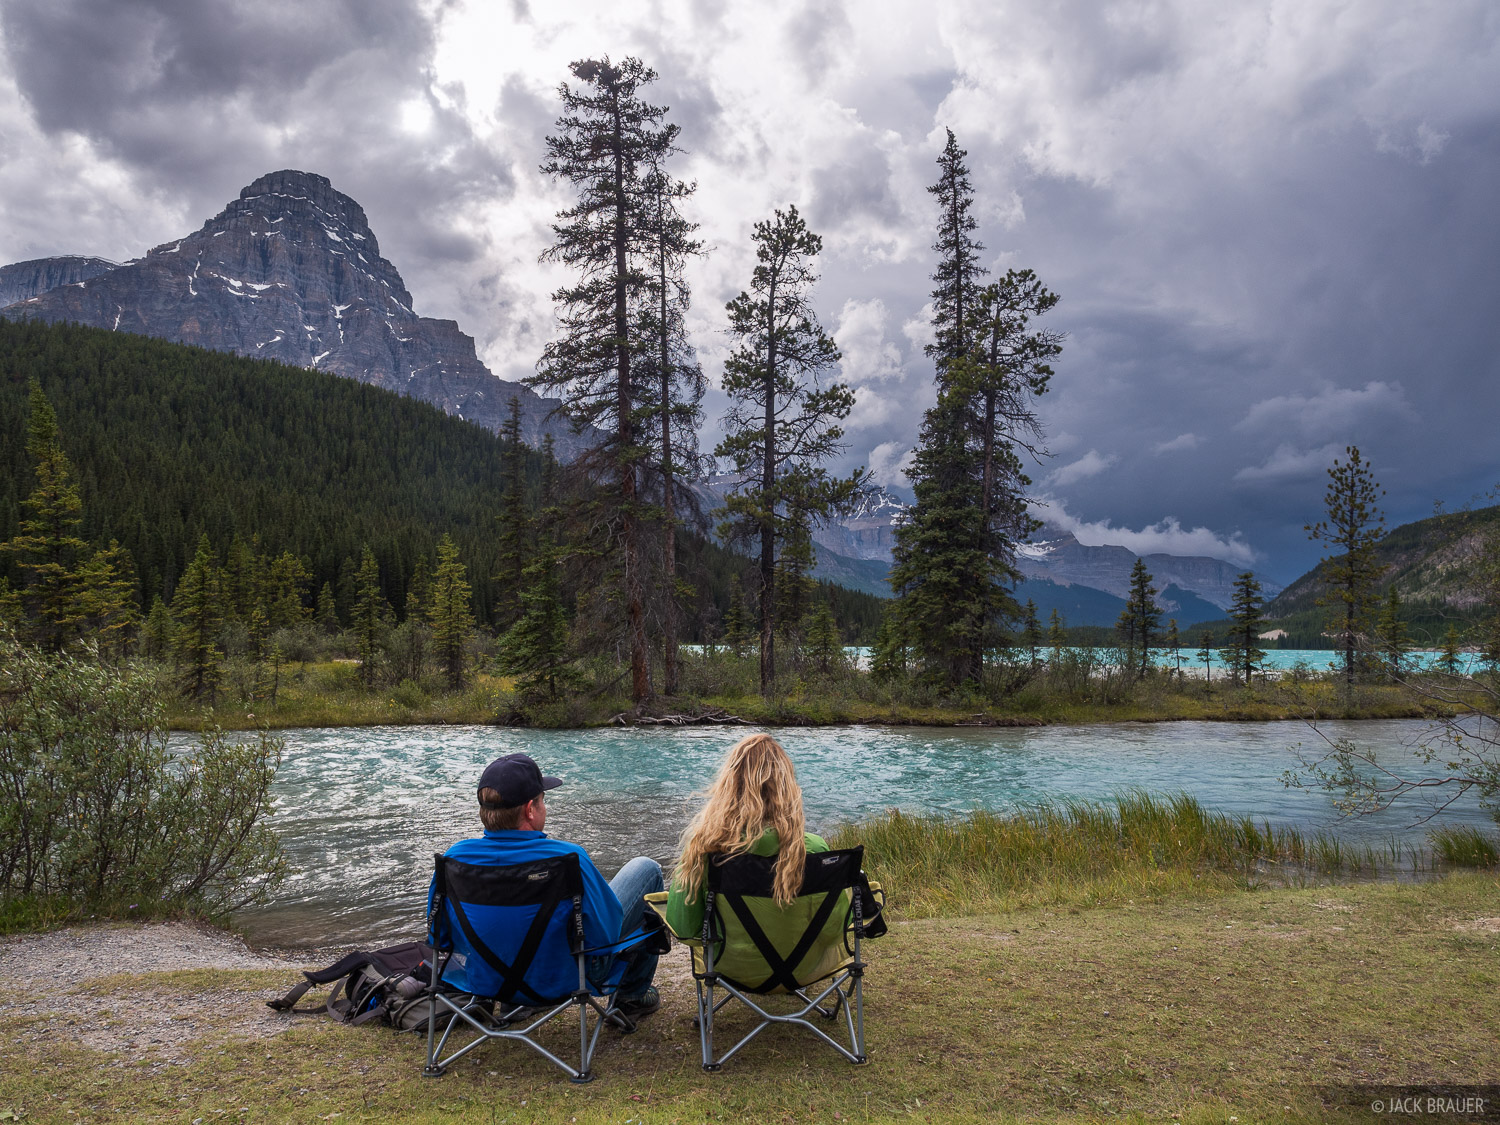 Hanging out at Waterfowl Lakes as an ominous storm blows in.